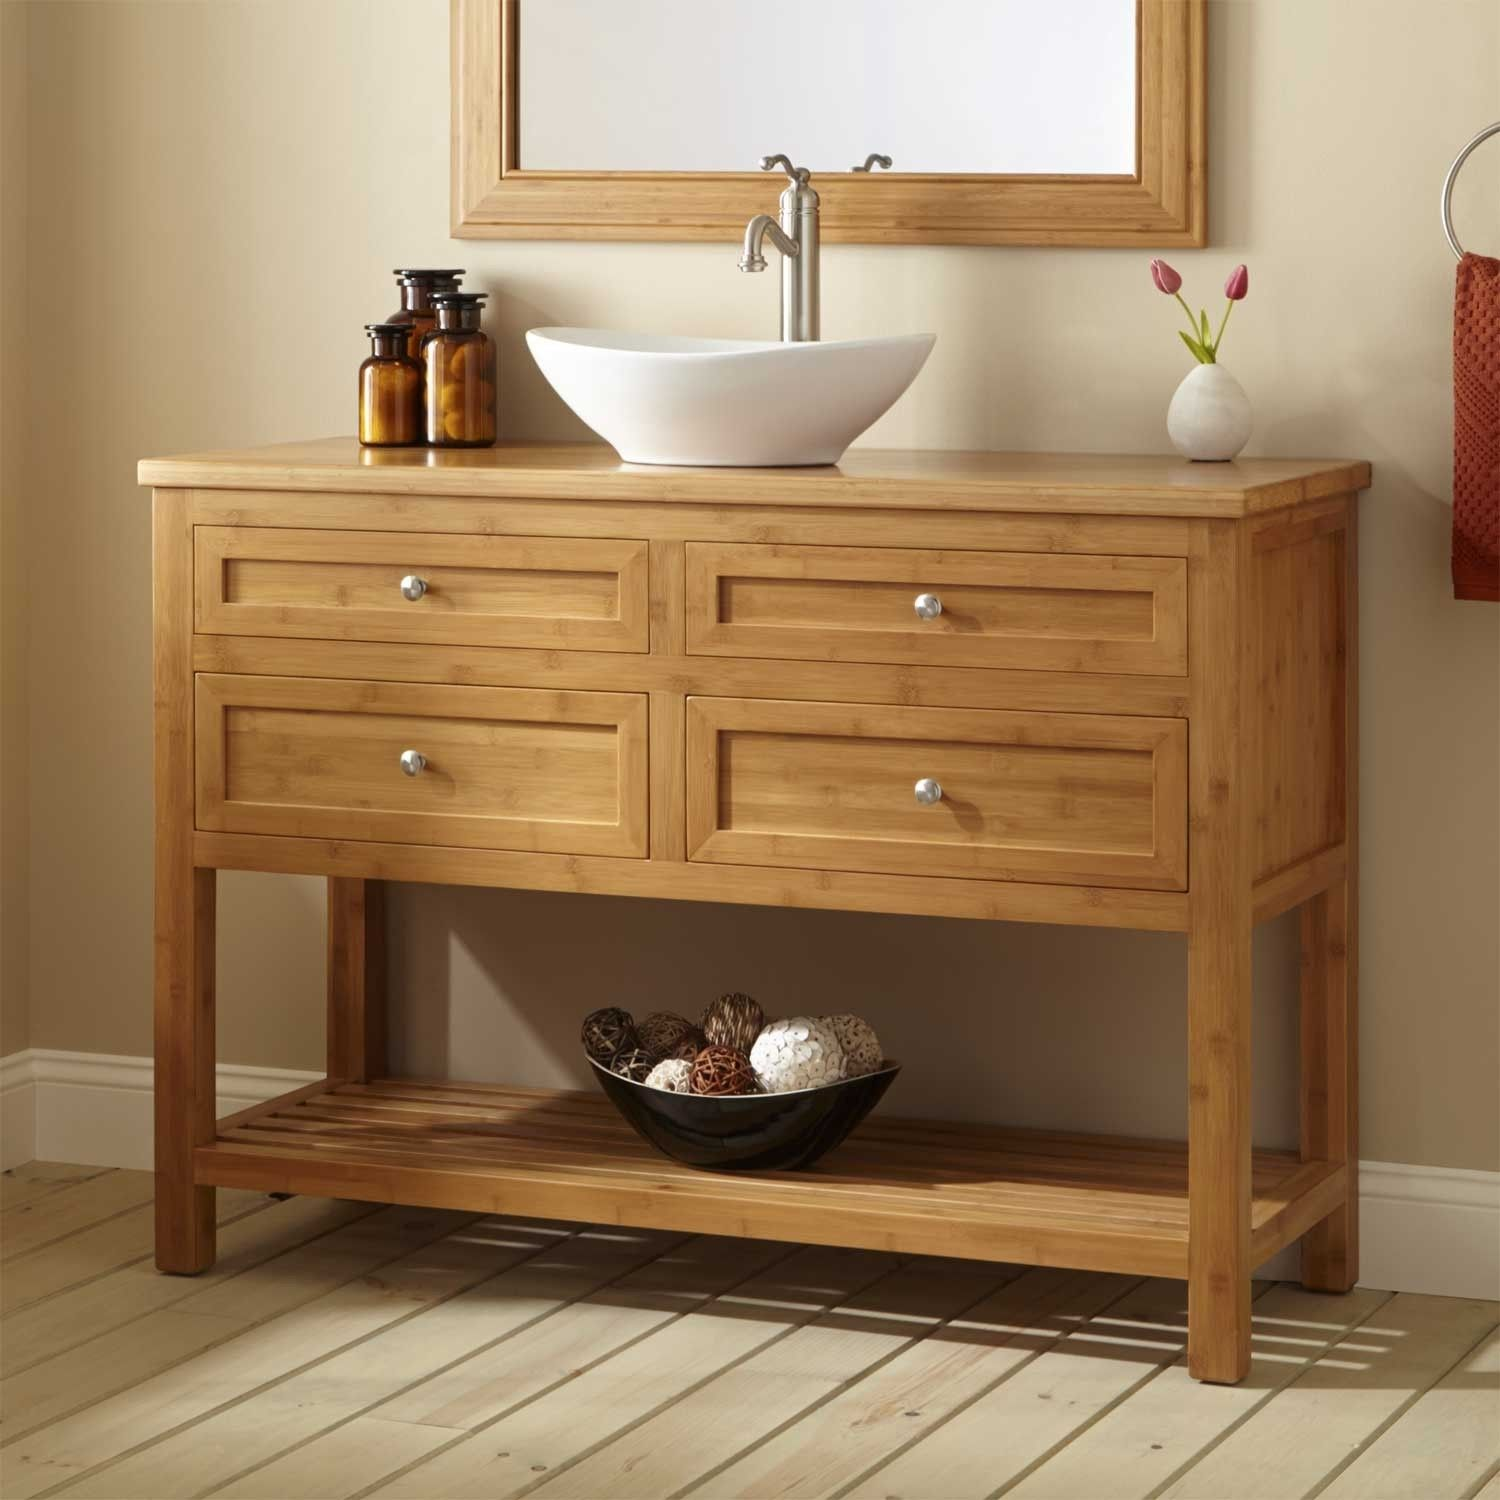 price of narrow depth vanity darntough reviews bathroom image design